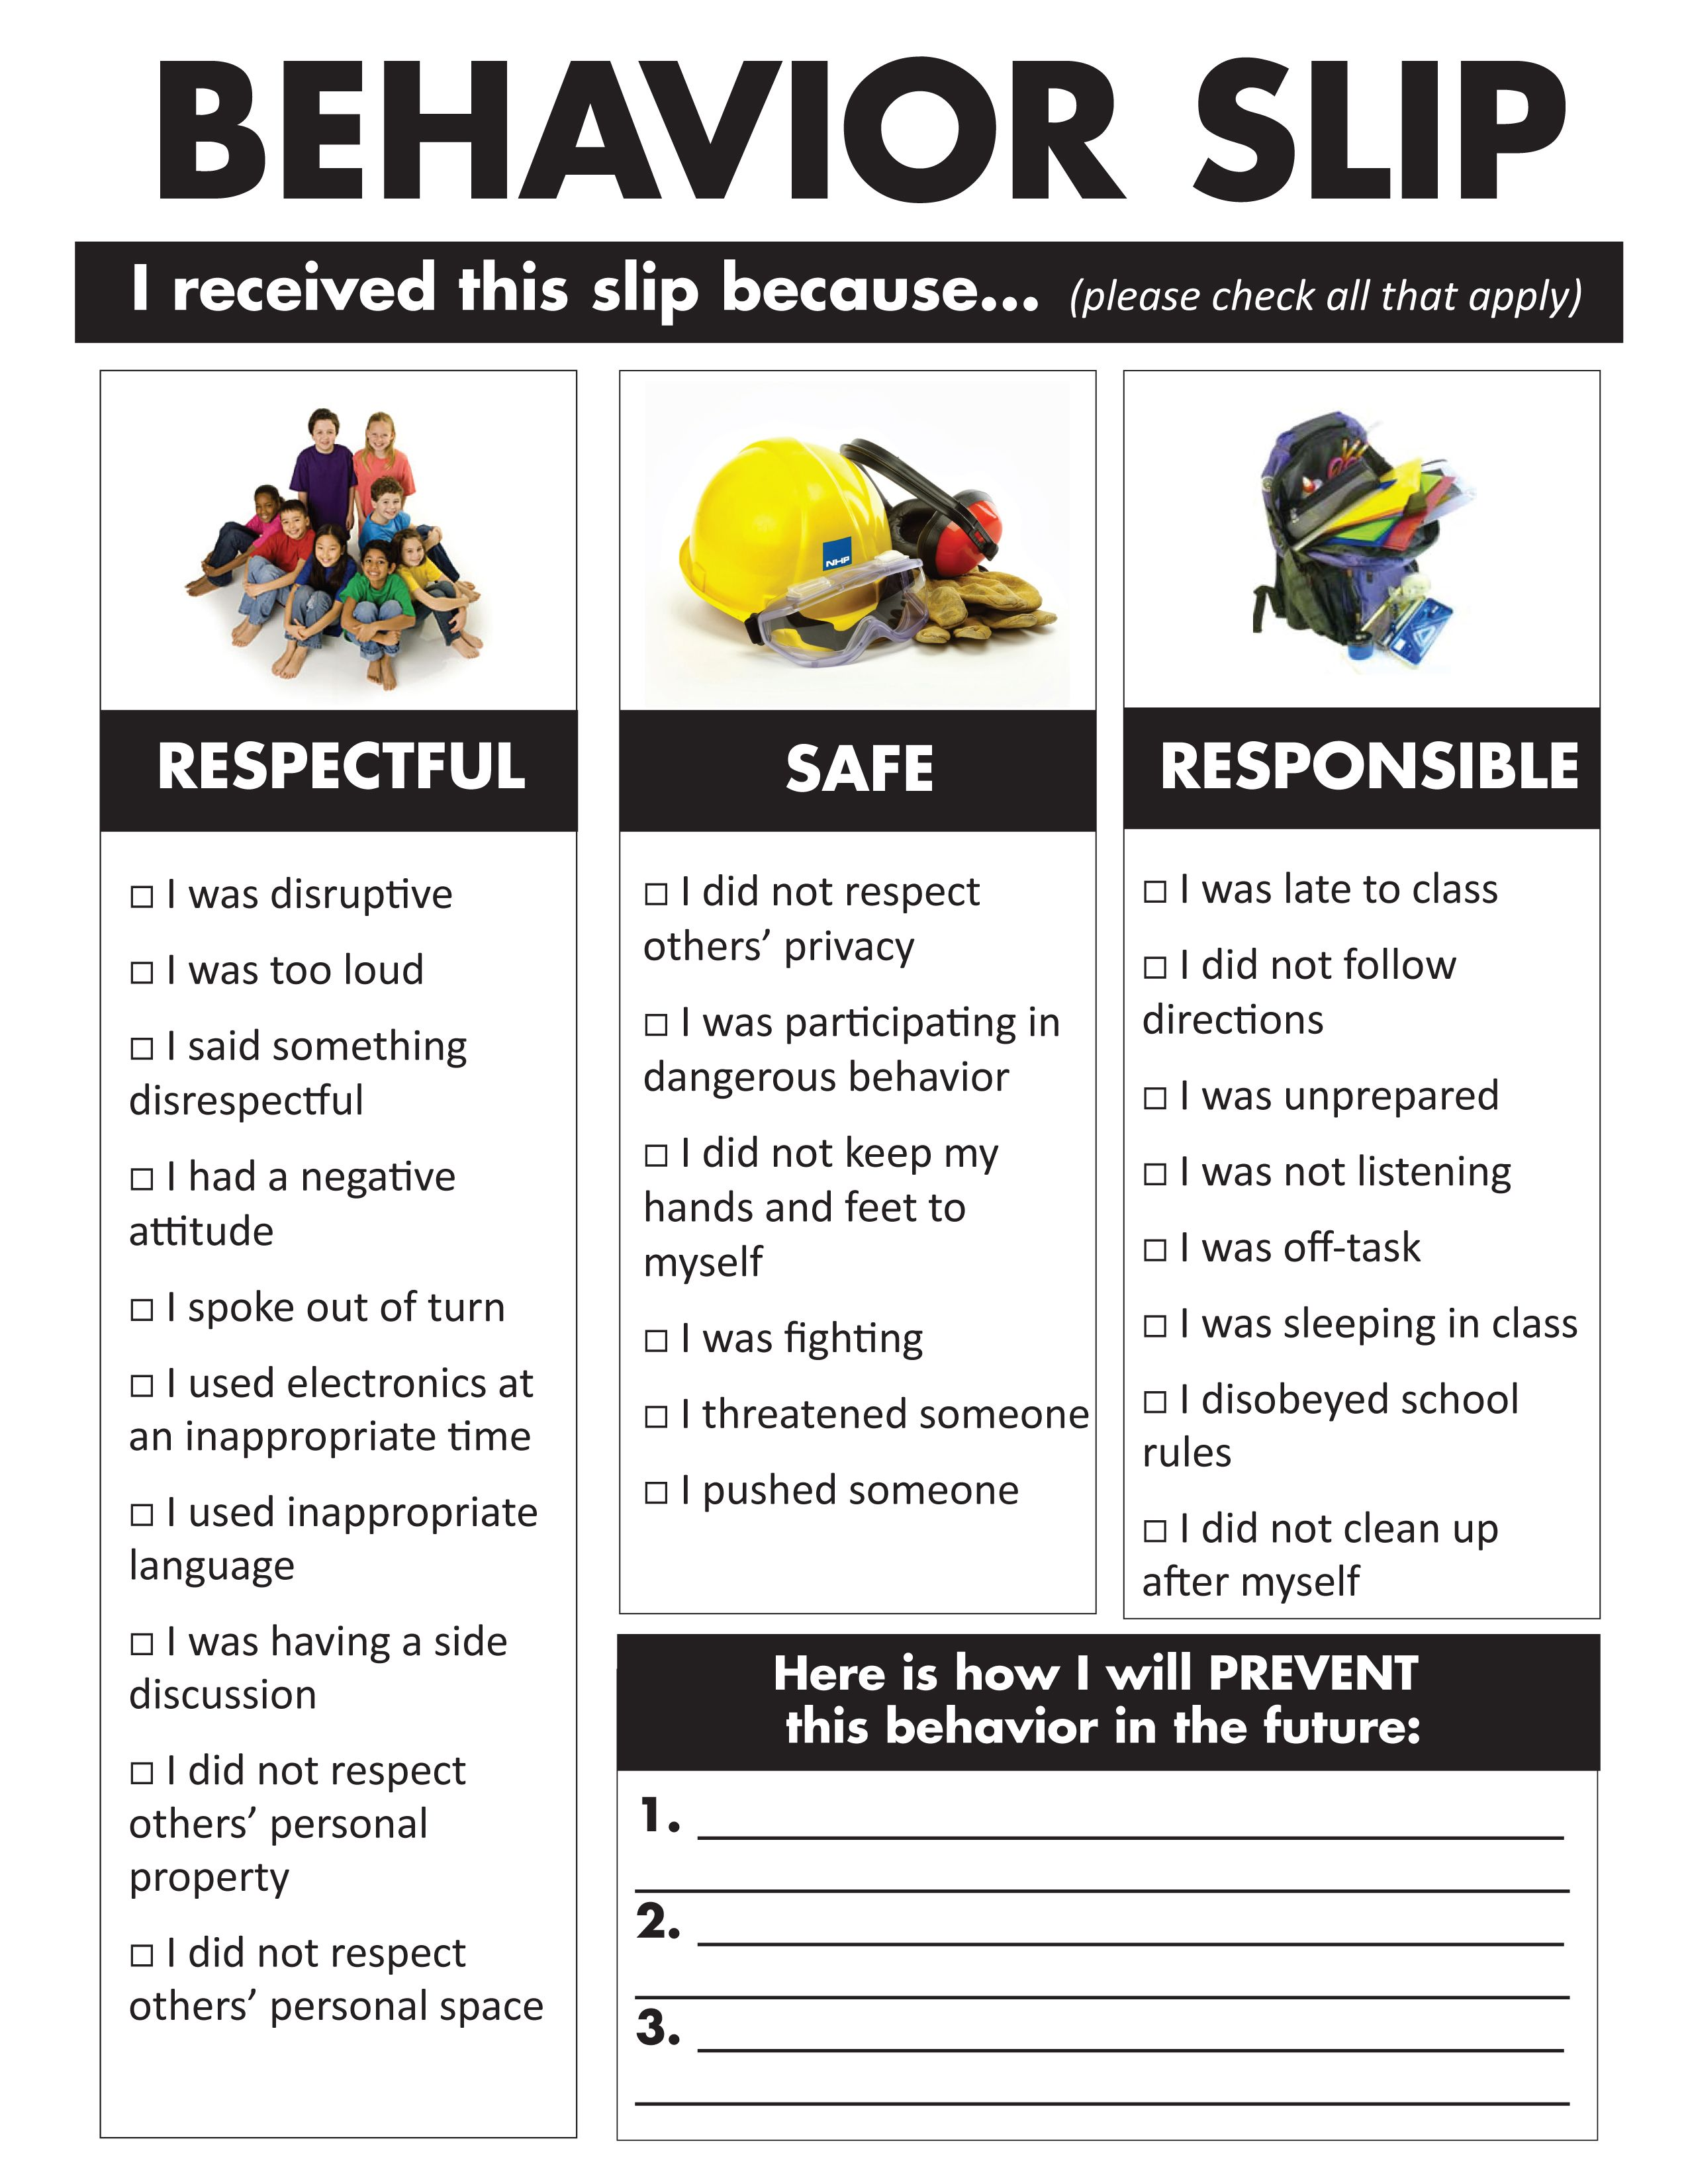 A Better Way To Deal With Disruptive Students In Middle And High School Print These Out On